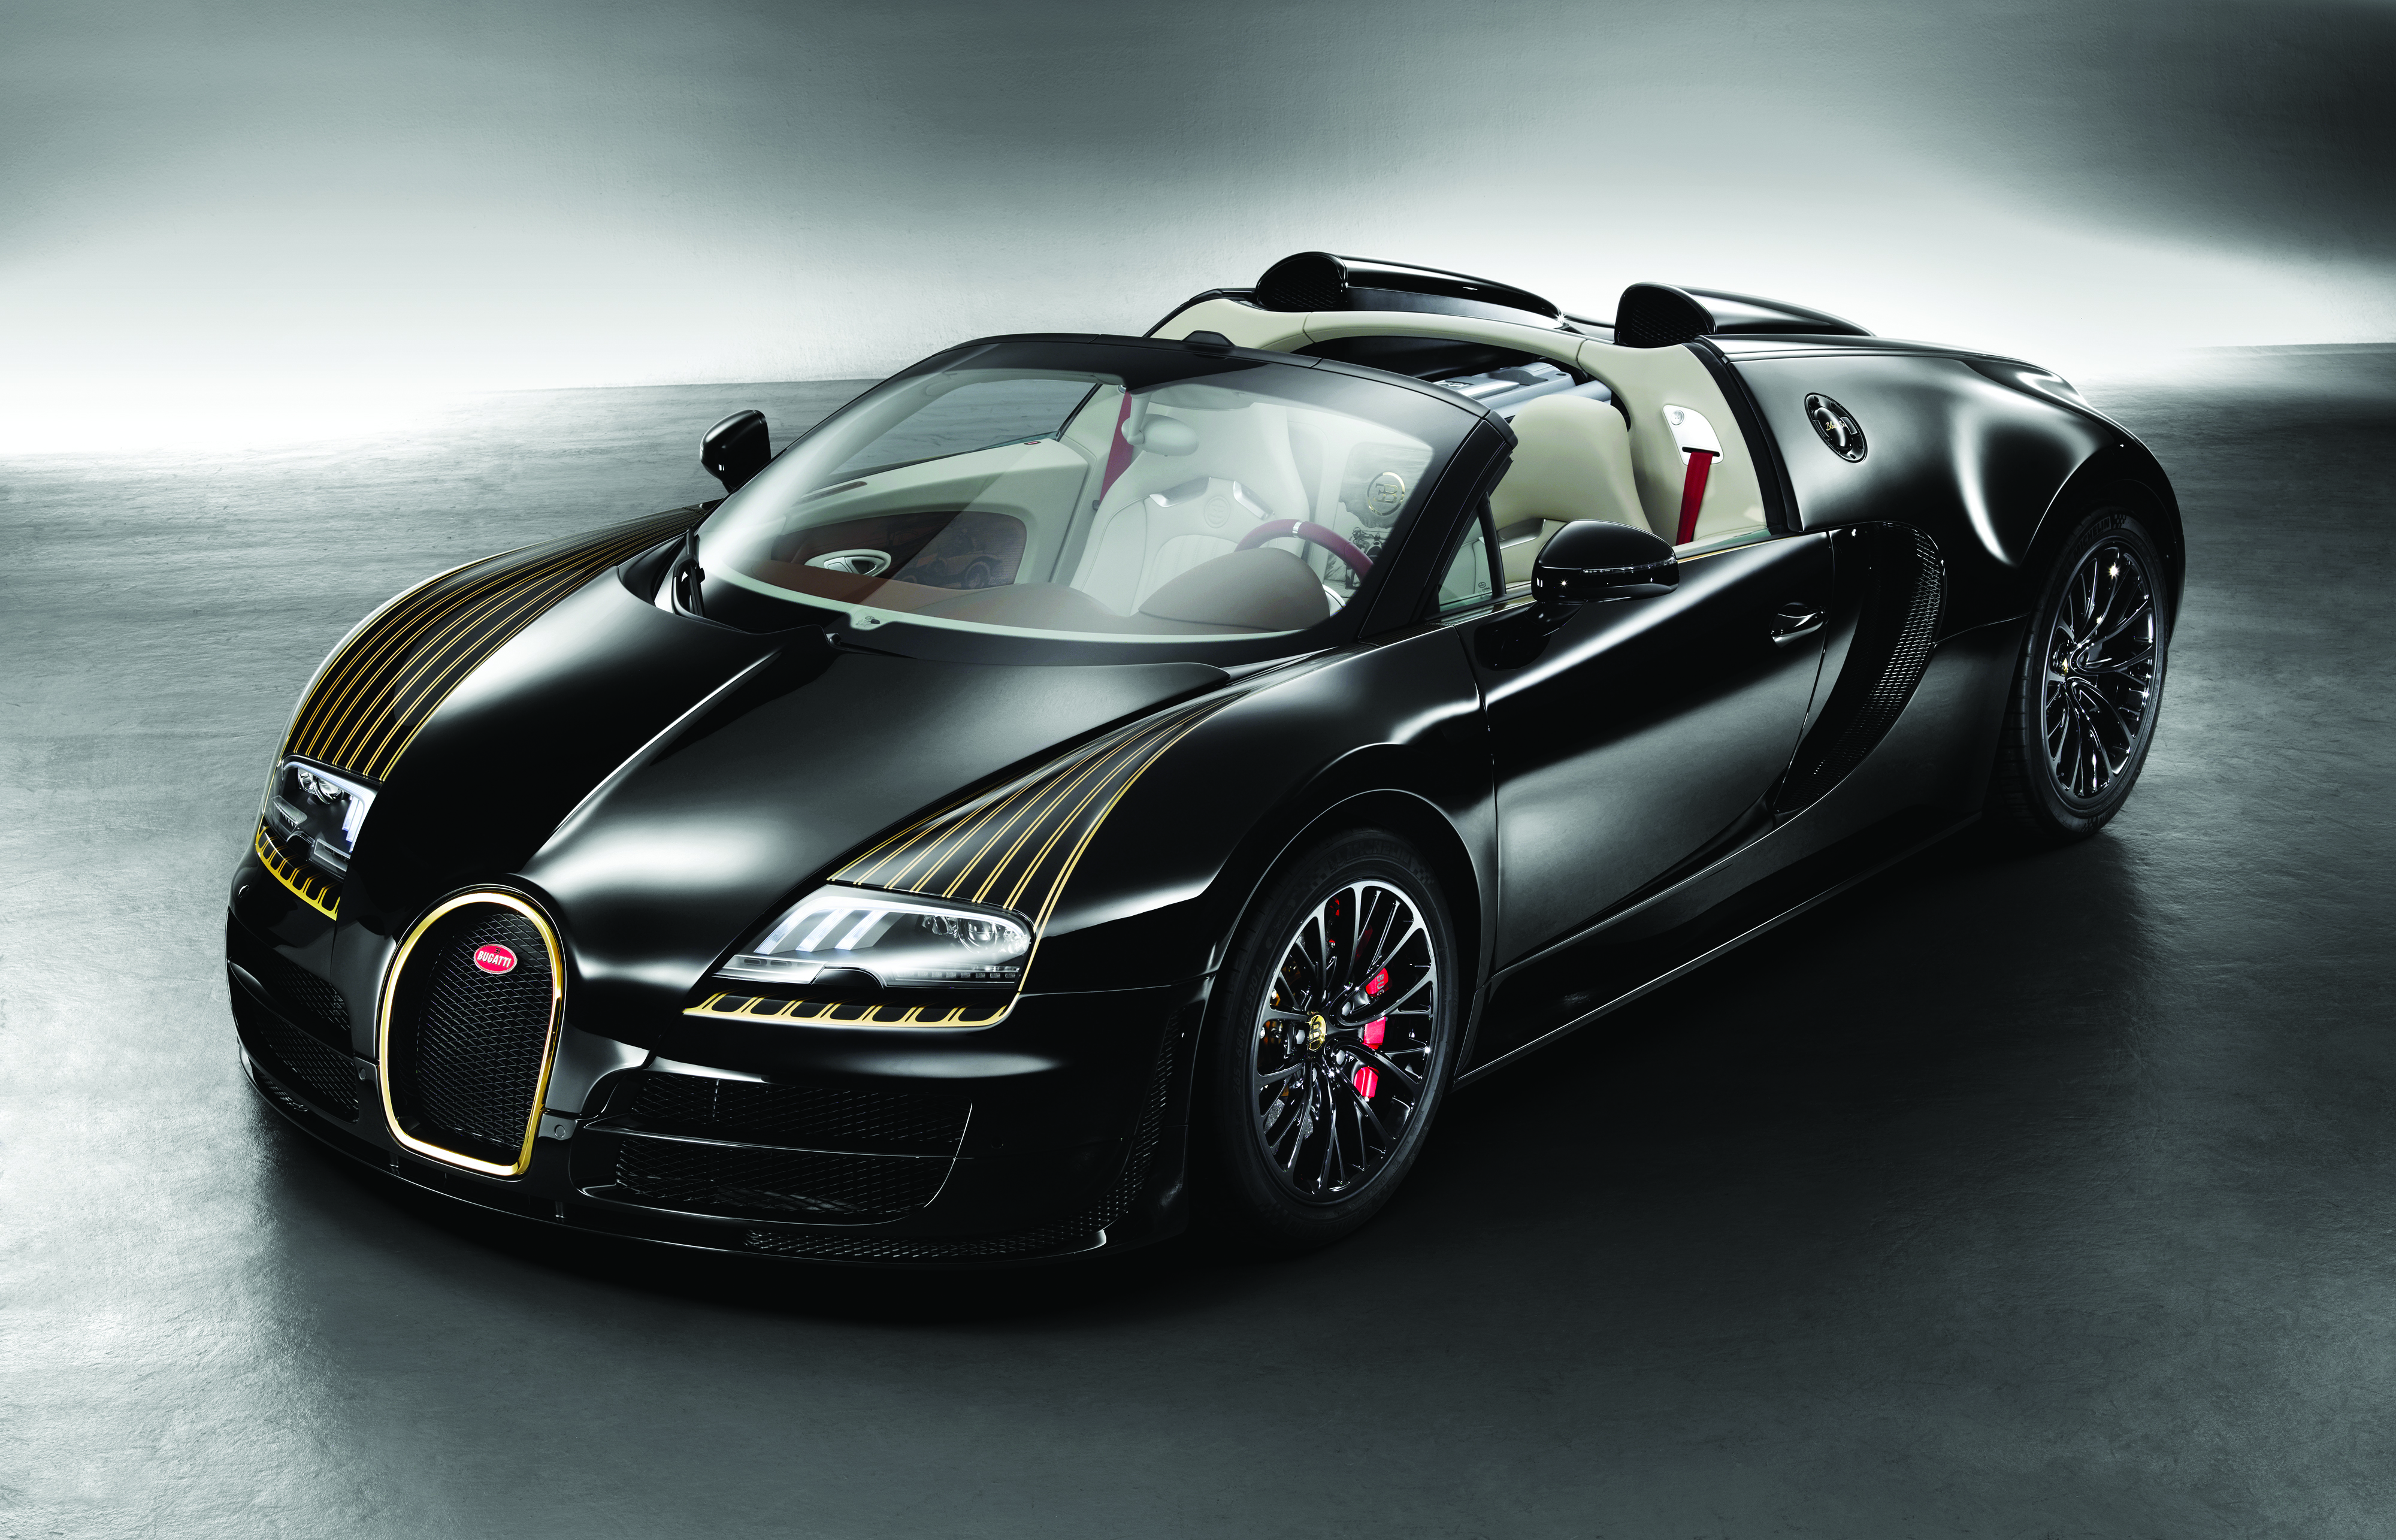 mansory-vivere Cool Bugatti Veyron Mansory Vivere Price Cars Trend